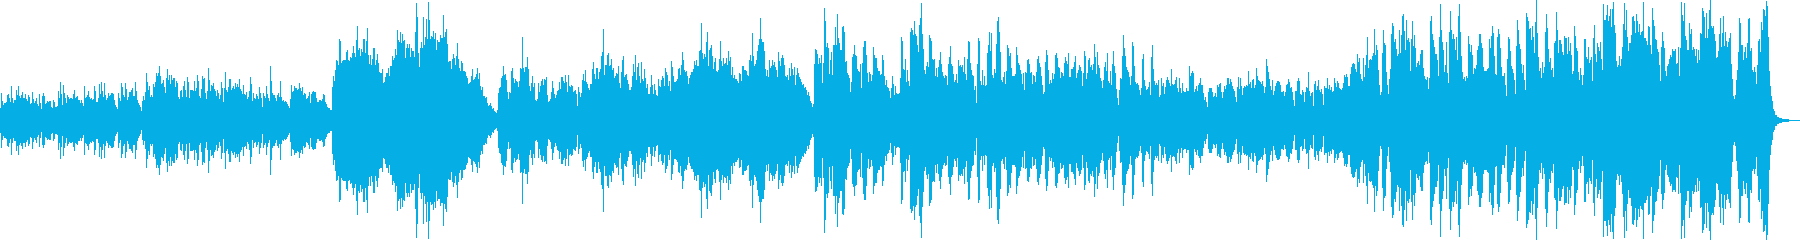 Inspiring orchestra's reproduced waveform